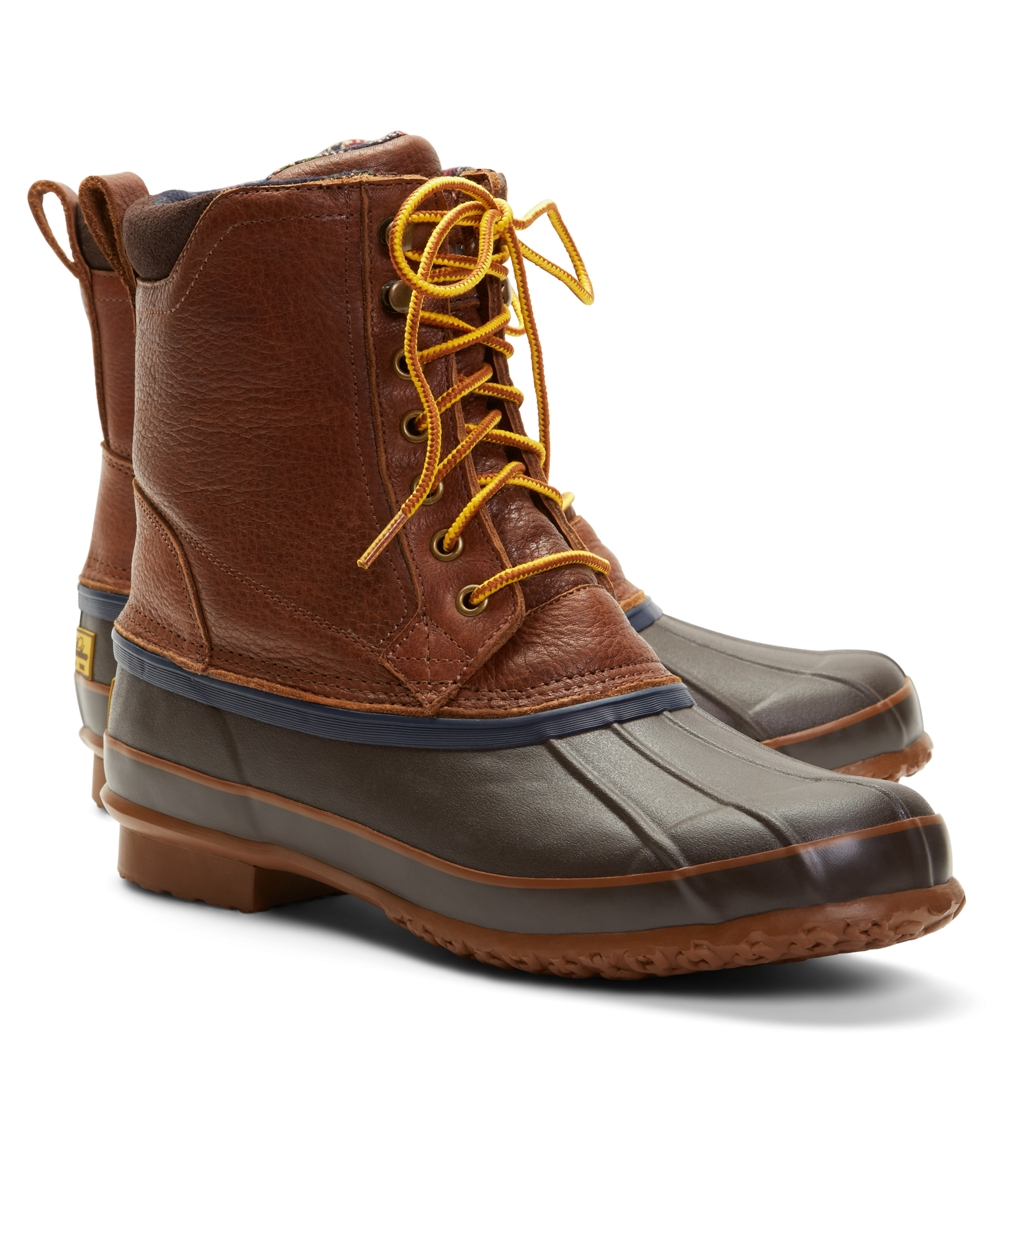 Duck boots men - photo#4